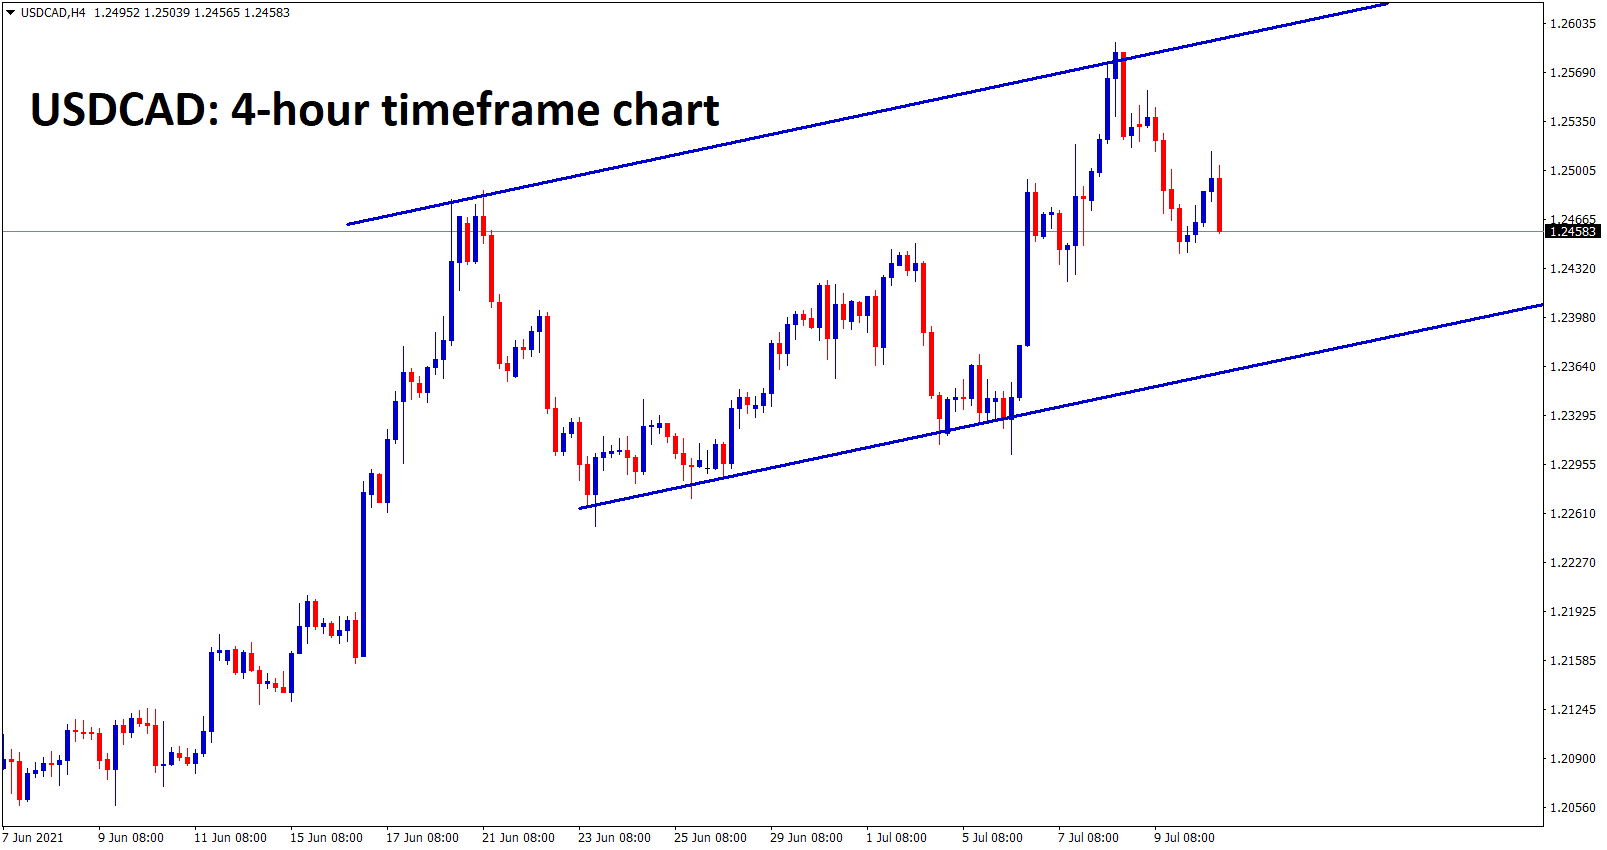 USDCAD is moving in an uptrend ranges